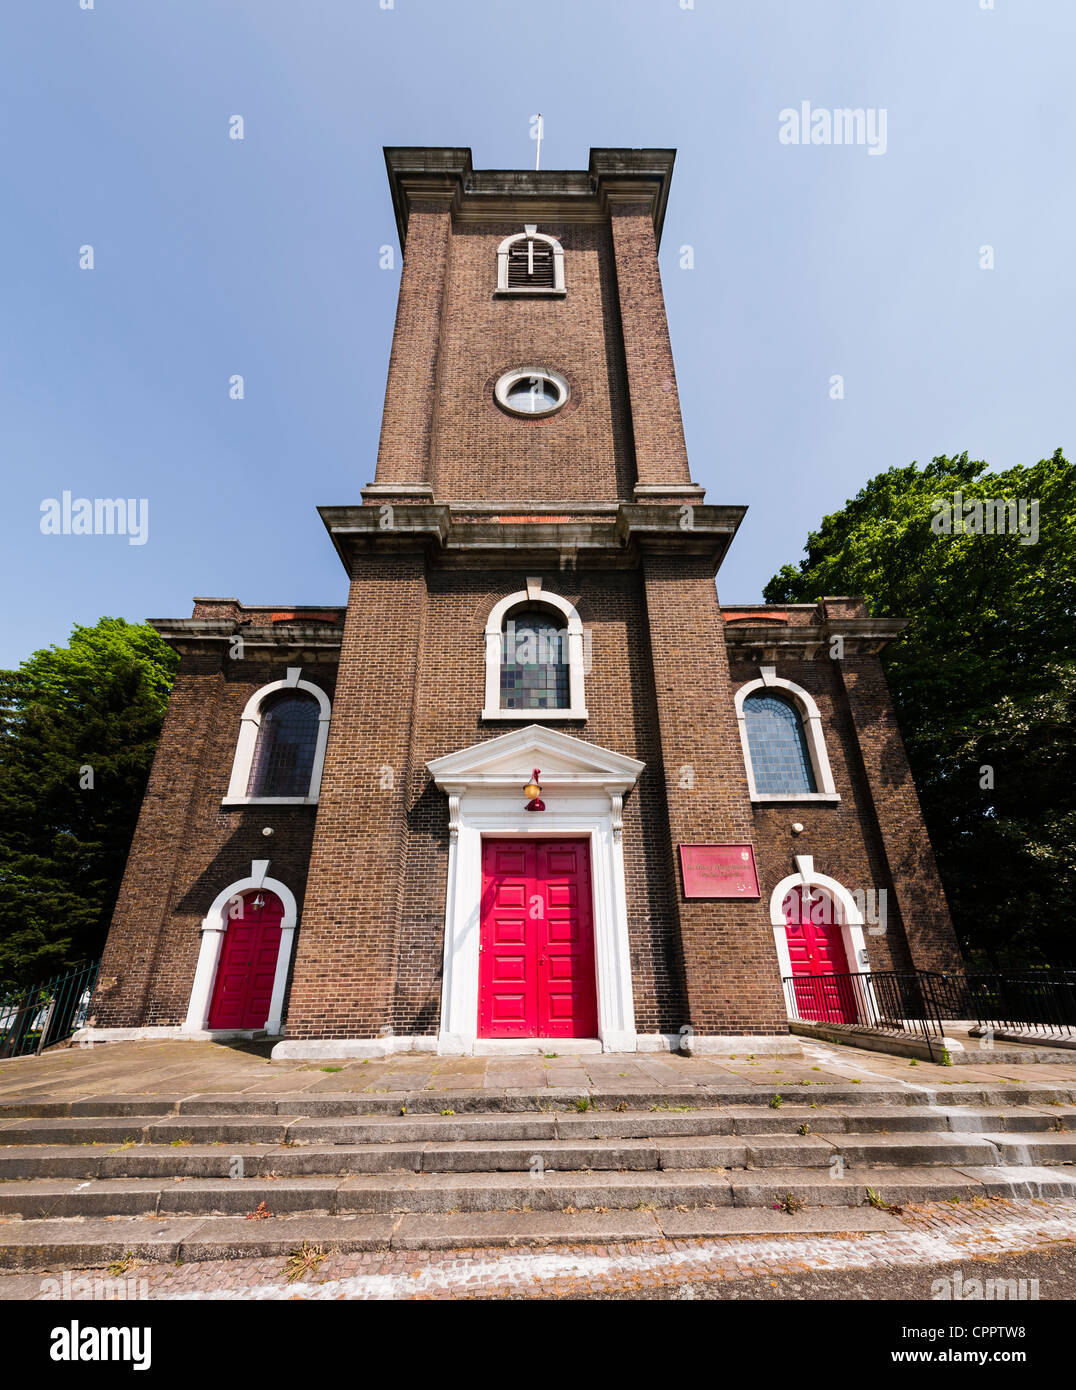 The St Mary Magdalene Parish Church in Woolwich, Greenwich. Stock Photo